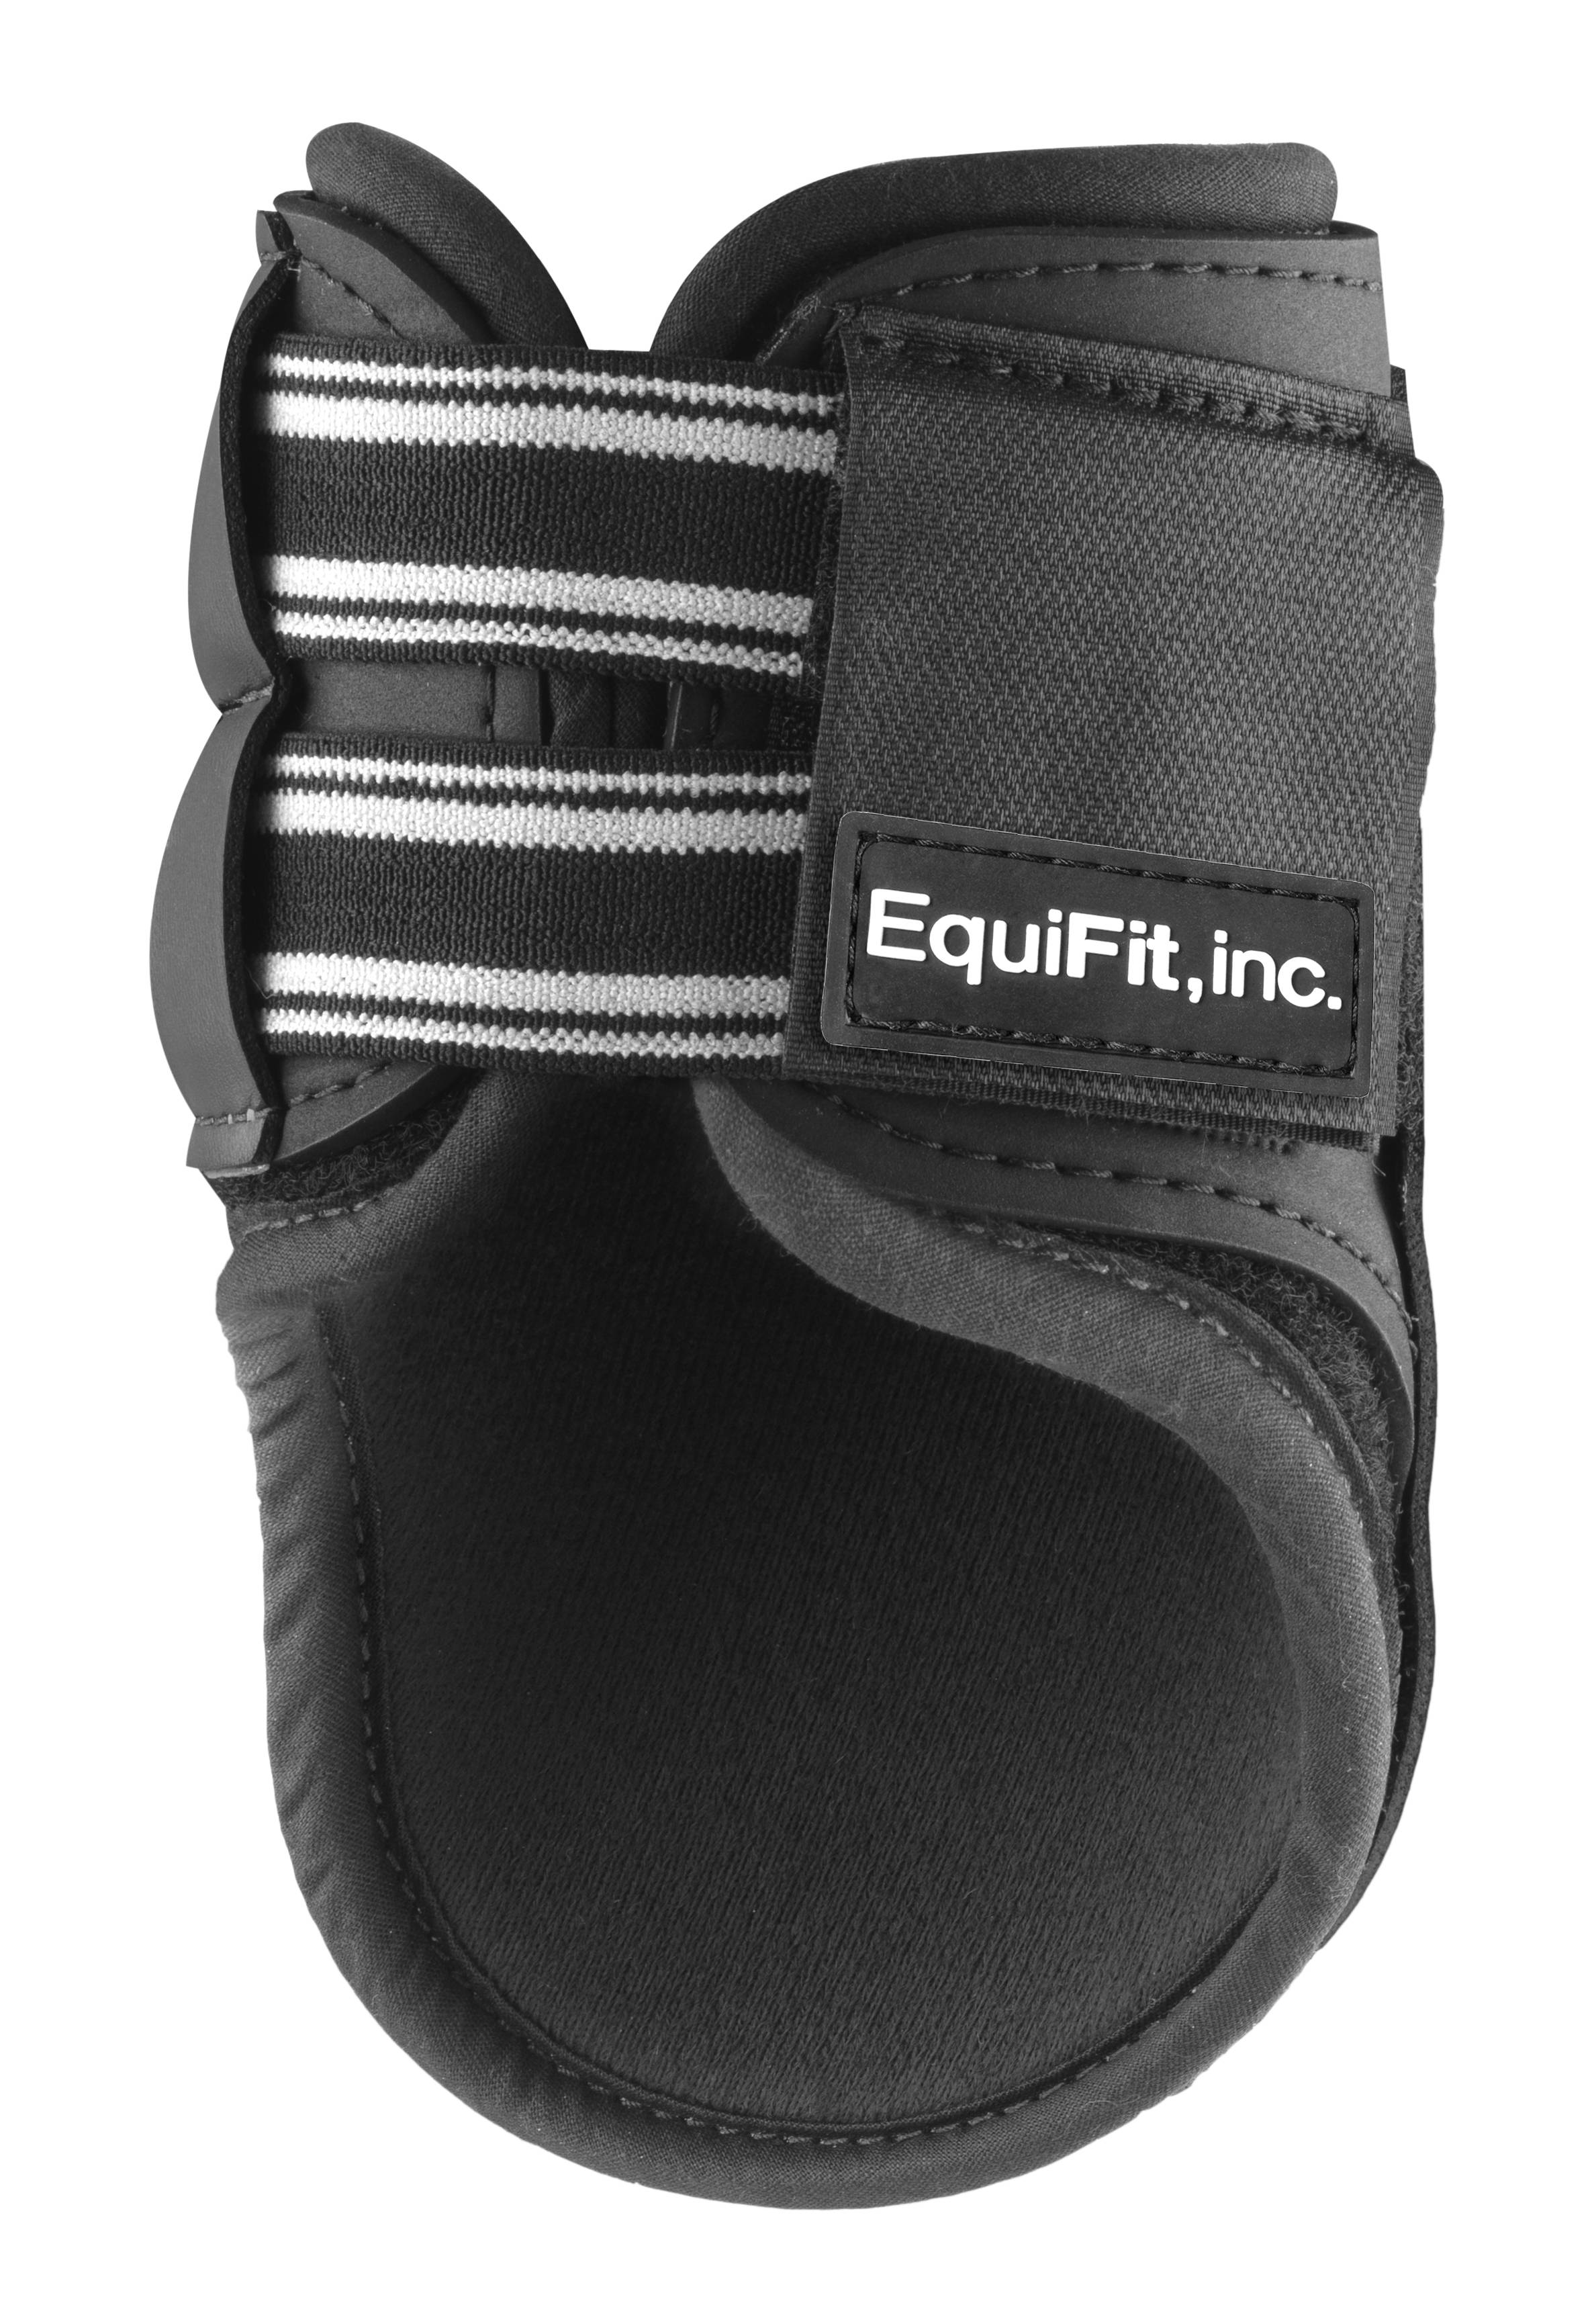 Equifit T-Boot Originals Hind Boot with Hook and Loop Closure